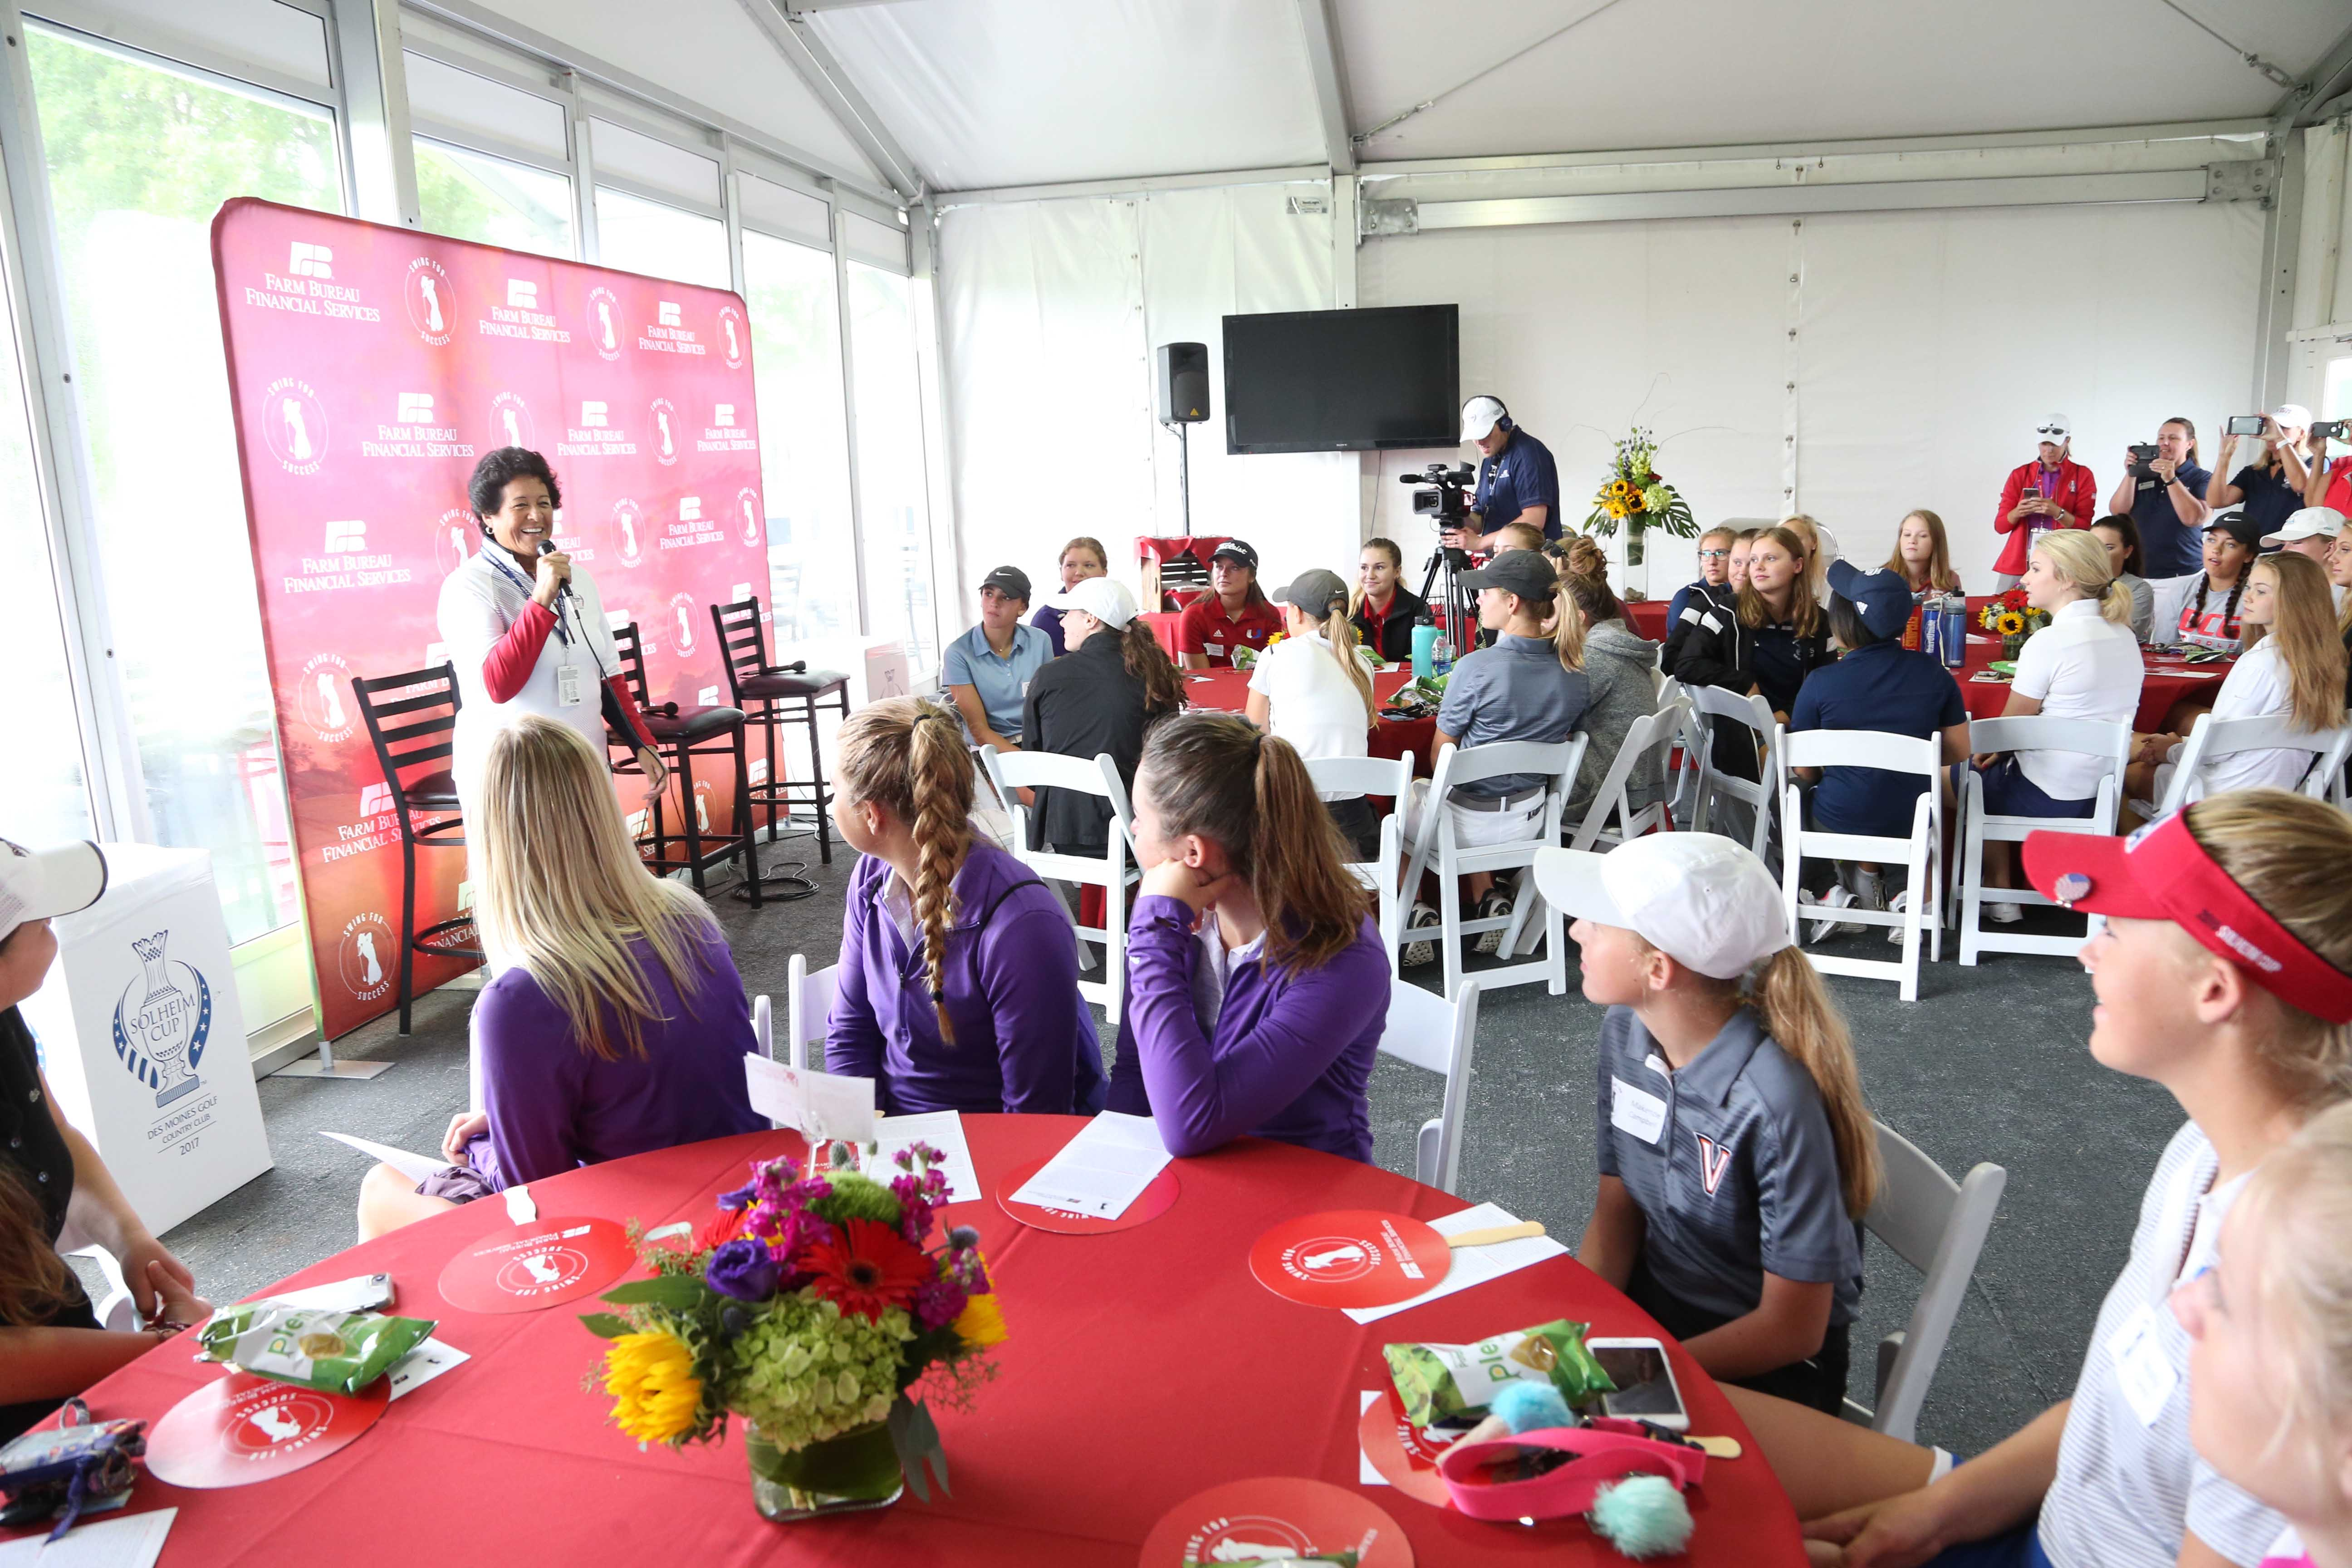 Nancy Lopez Addresses Group